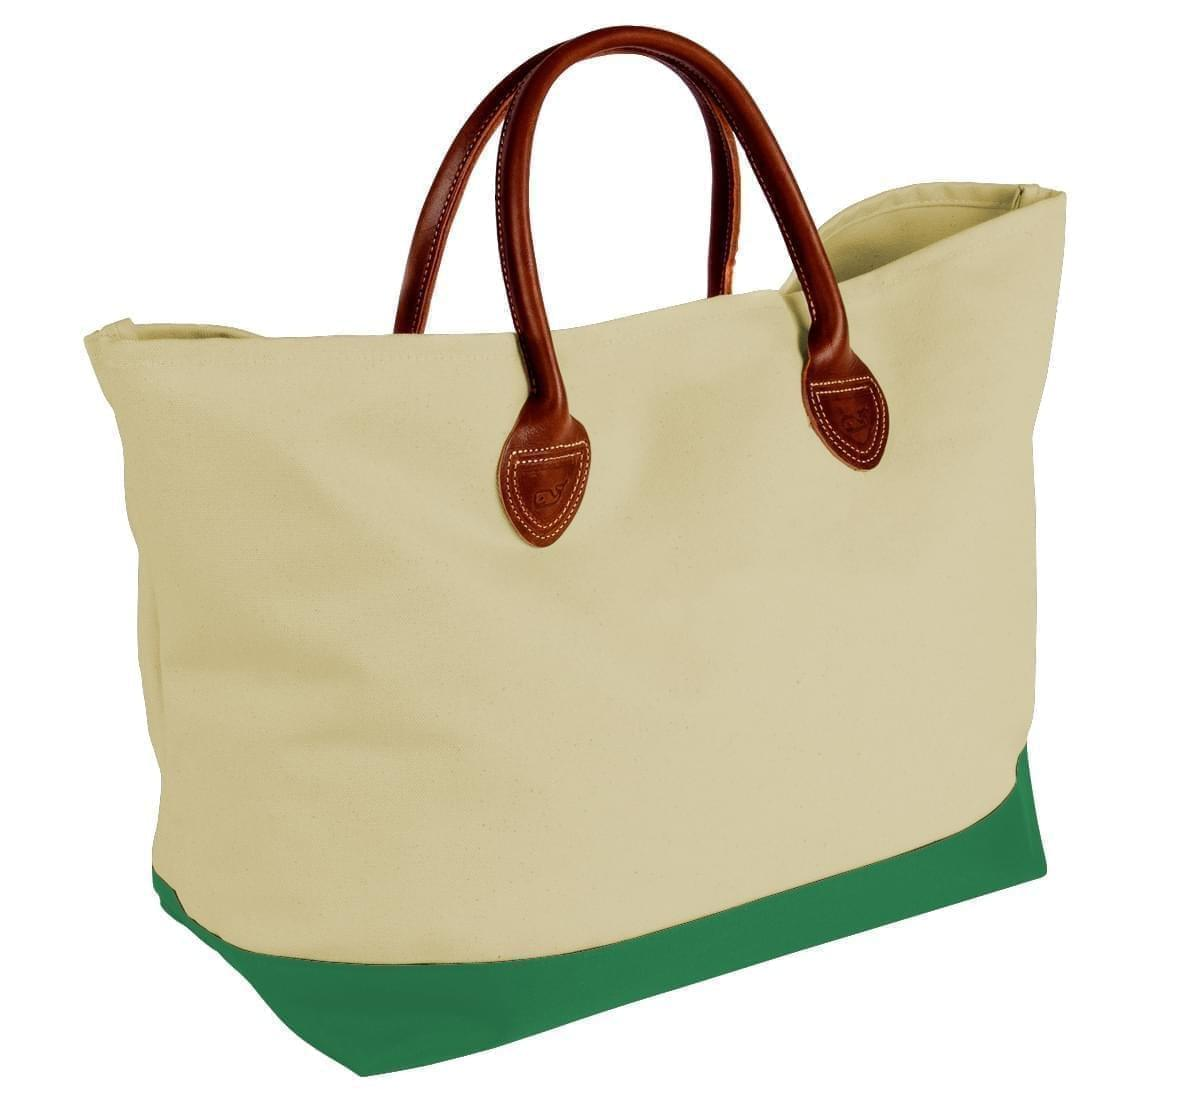 USA Made Canvas Leather Handle Totes, Natural-Kelly Green, 10899-HK9